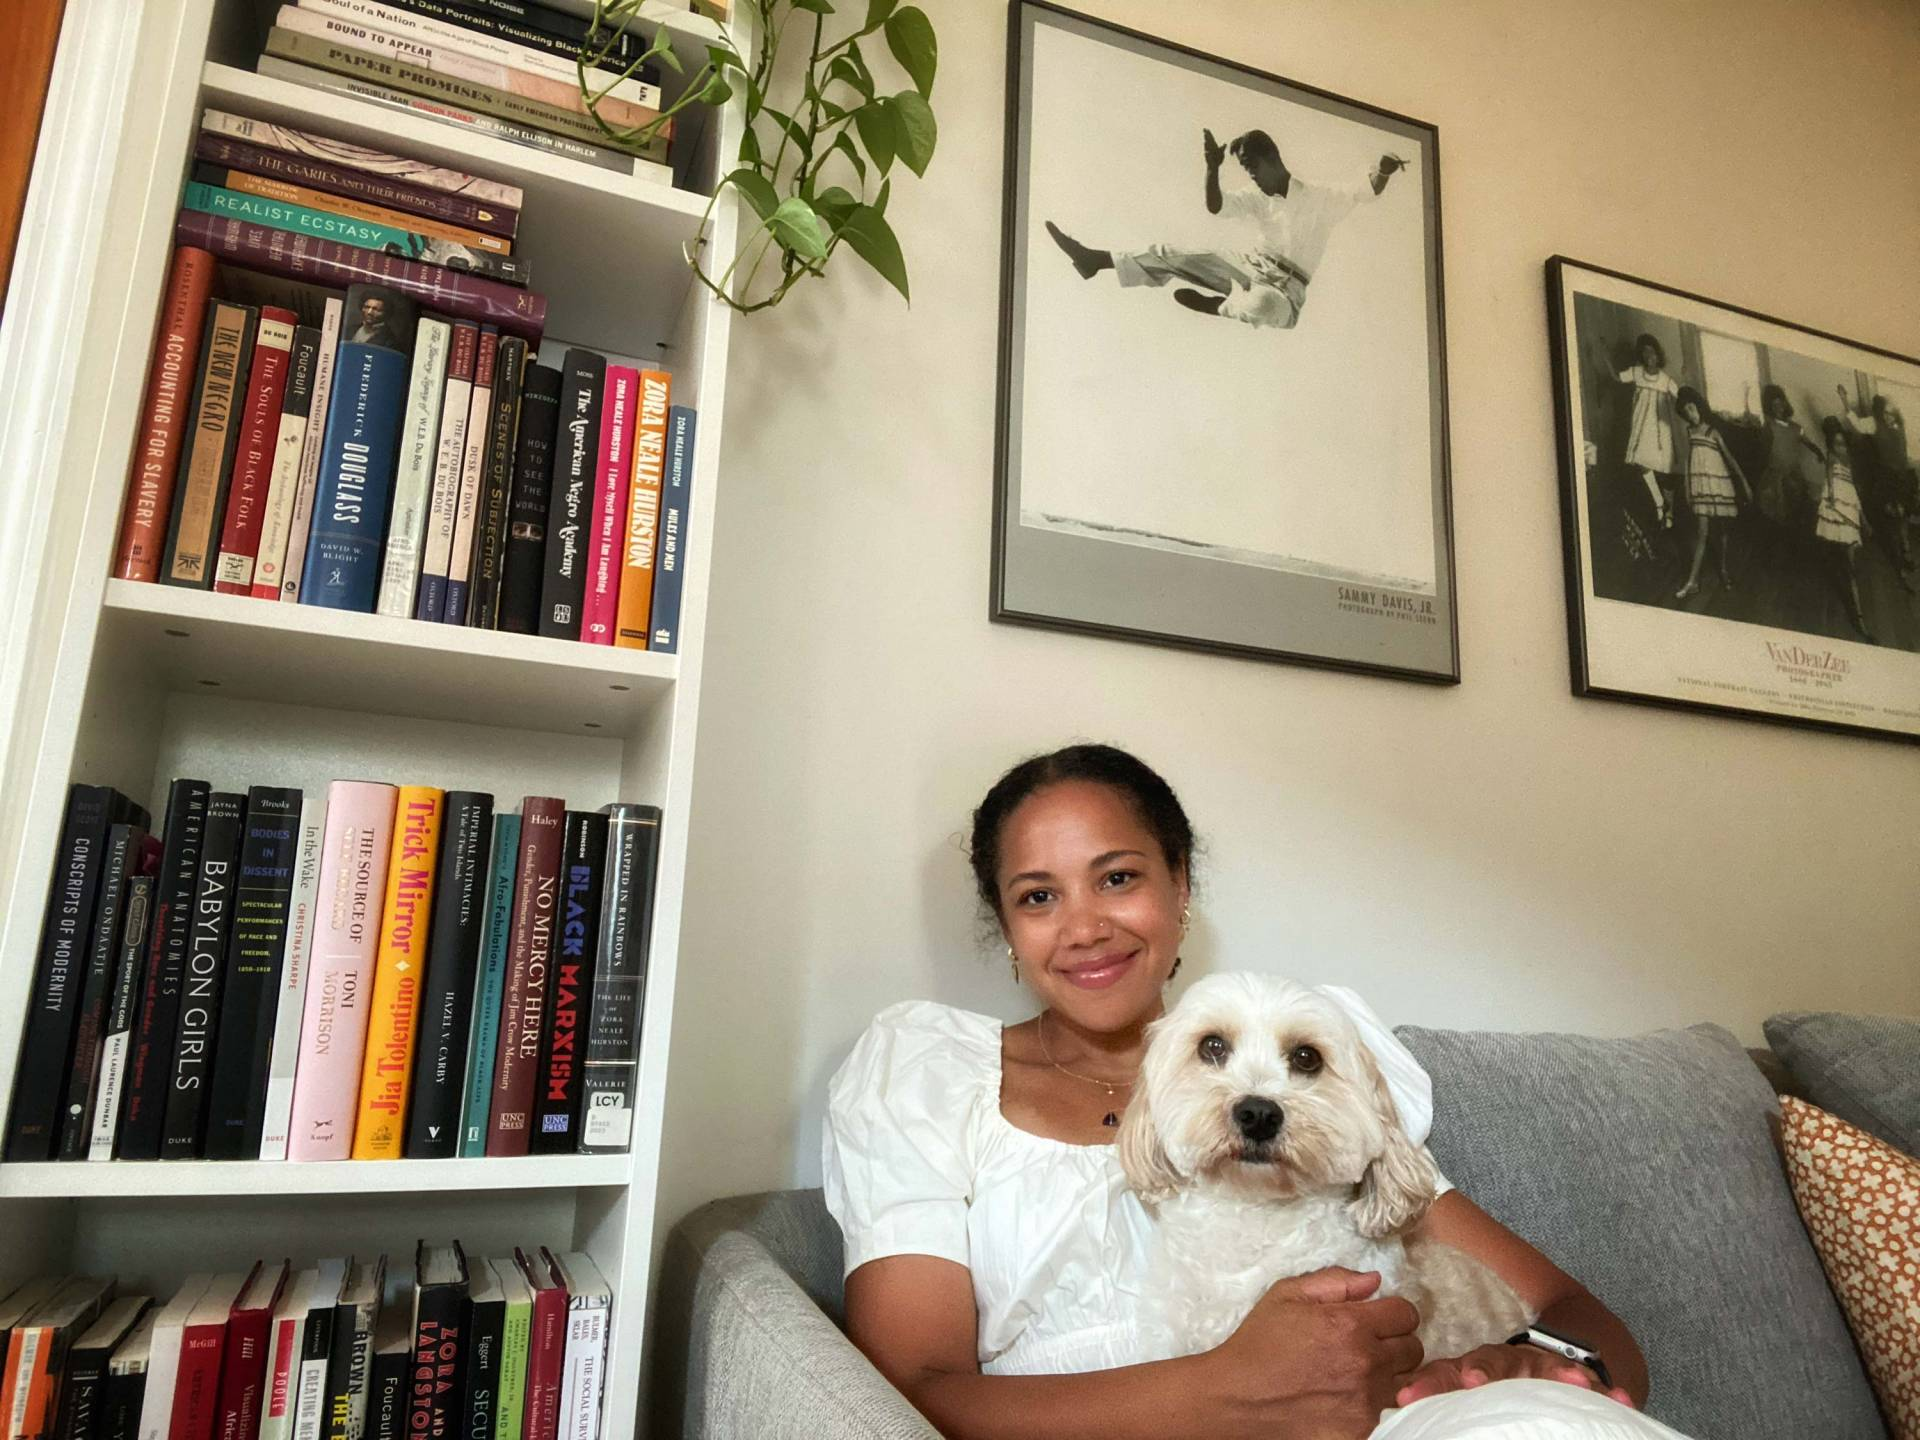 Autumn Womack with her dog next to bookshelves